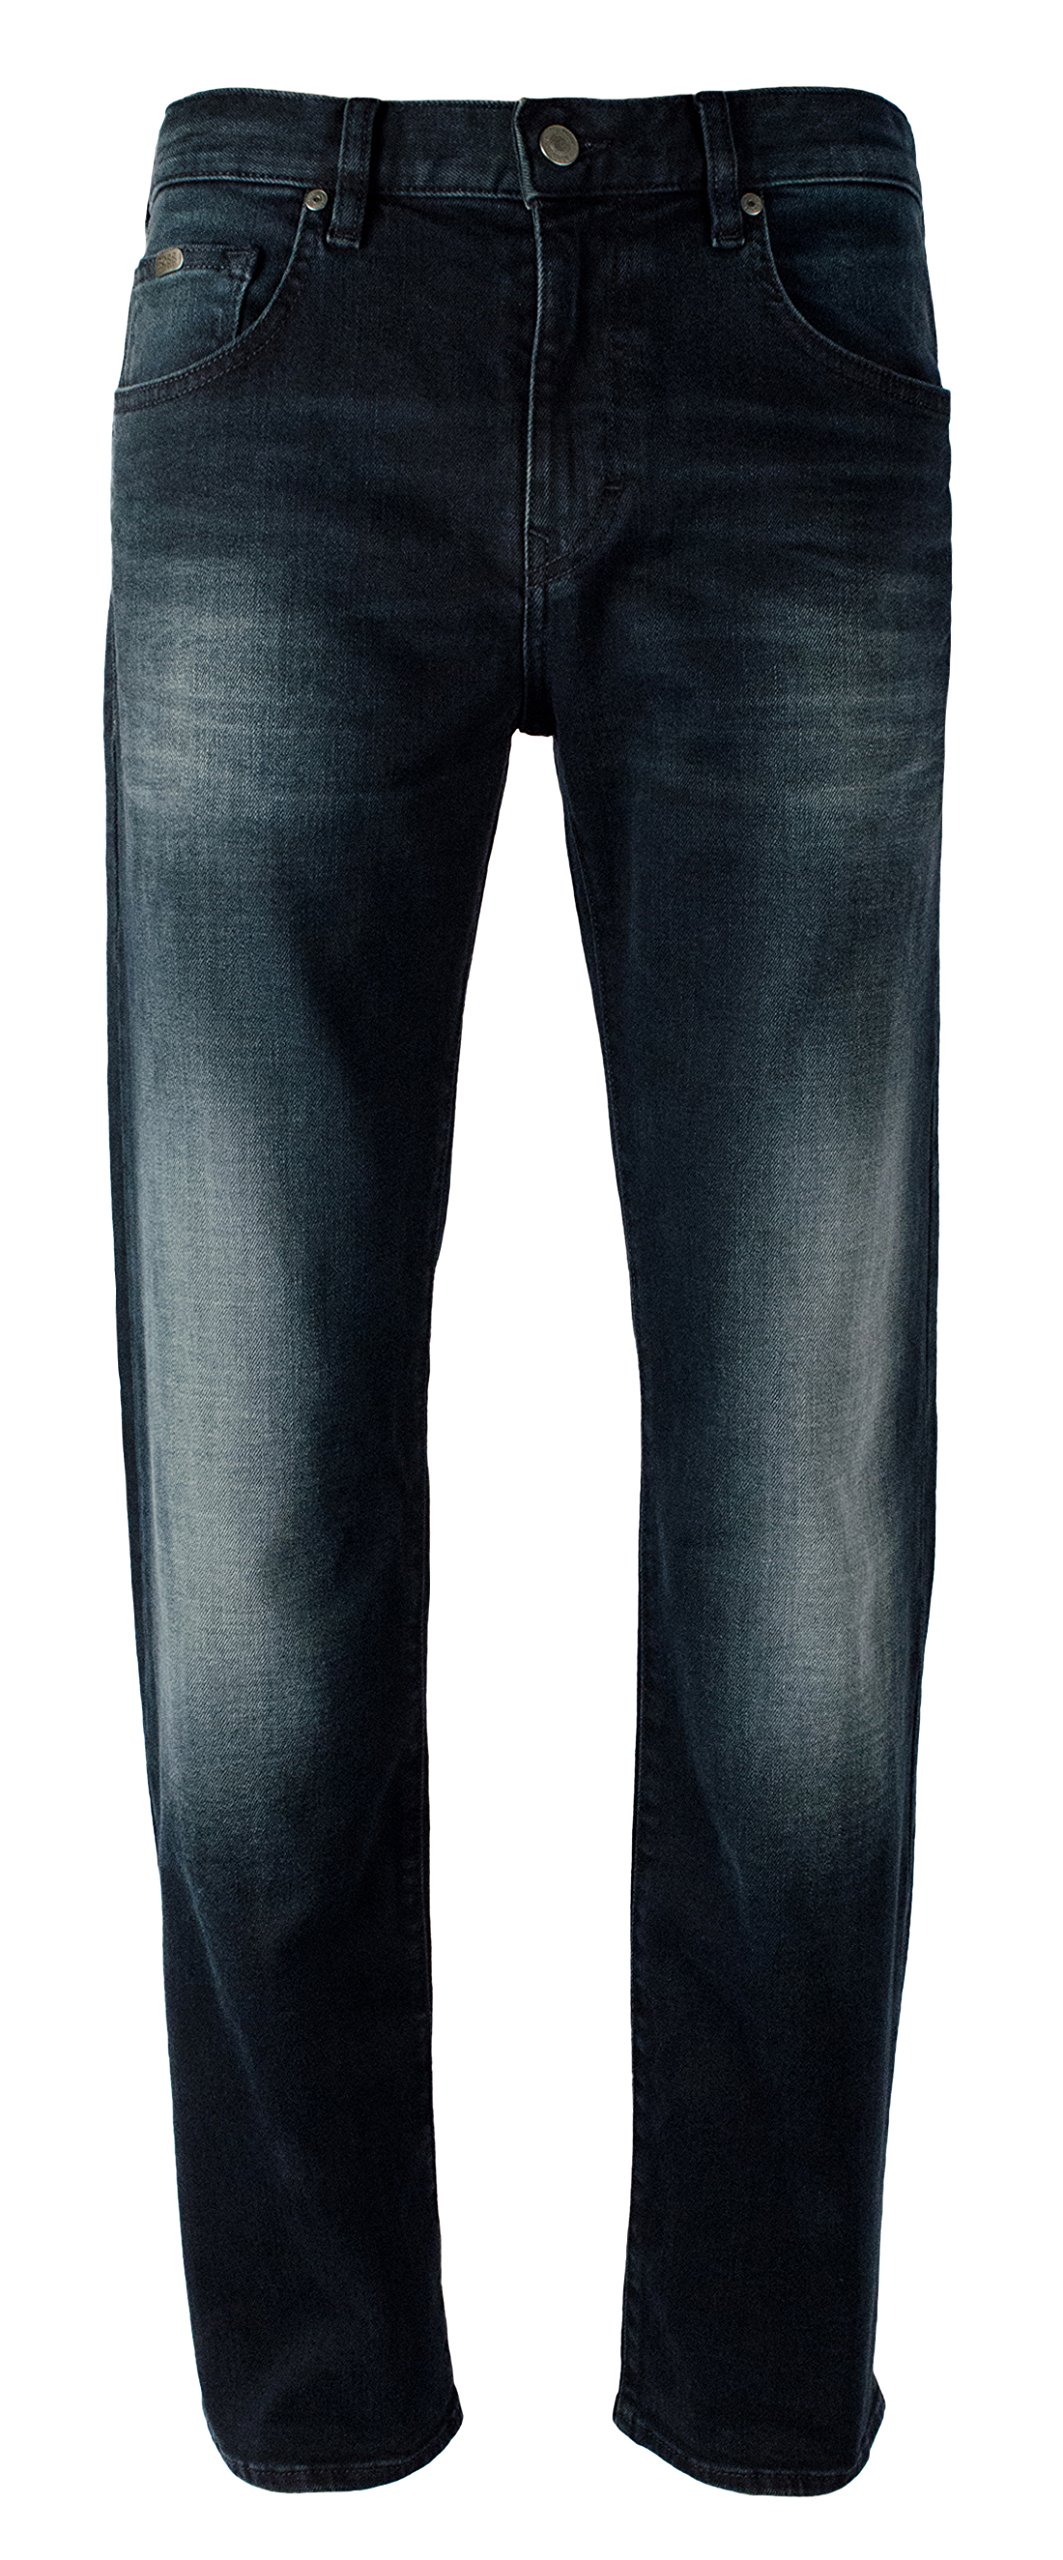 Hugo Boss Men's Kansas Relaxed Fit Green Label Stretch Jeans-B-30Wx32L